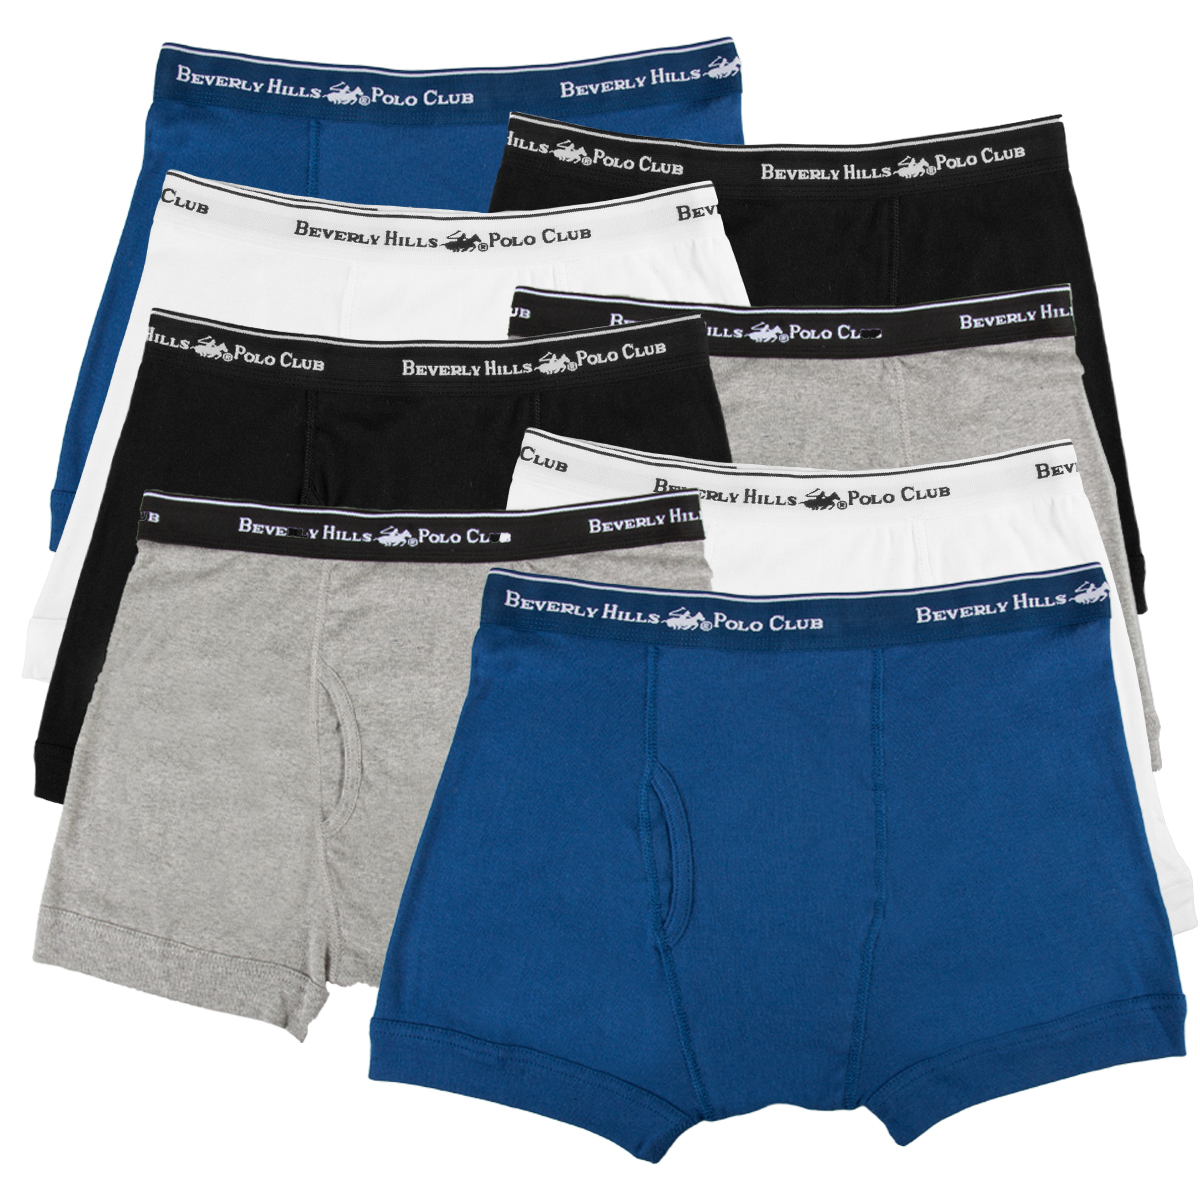 Pack of 6 Beverly Hills Polo Club Boys Underwear Briefs